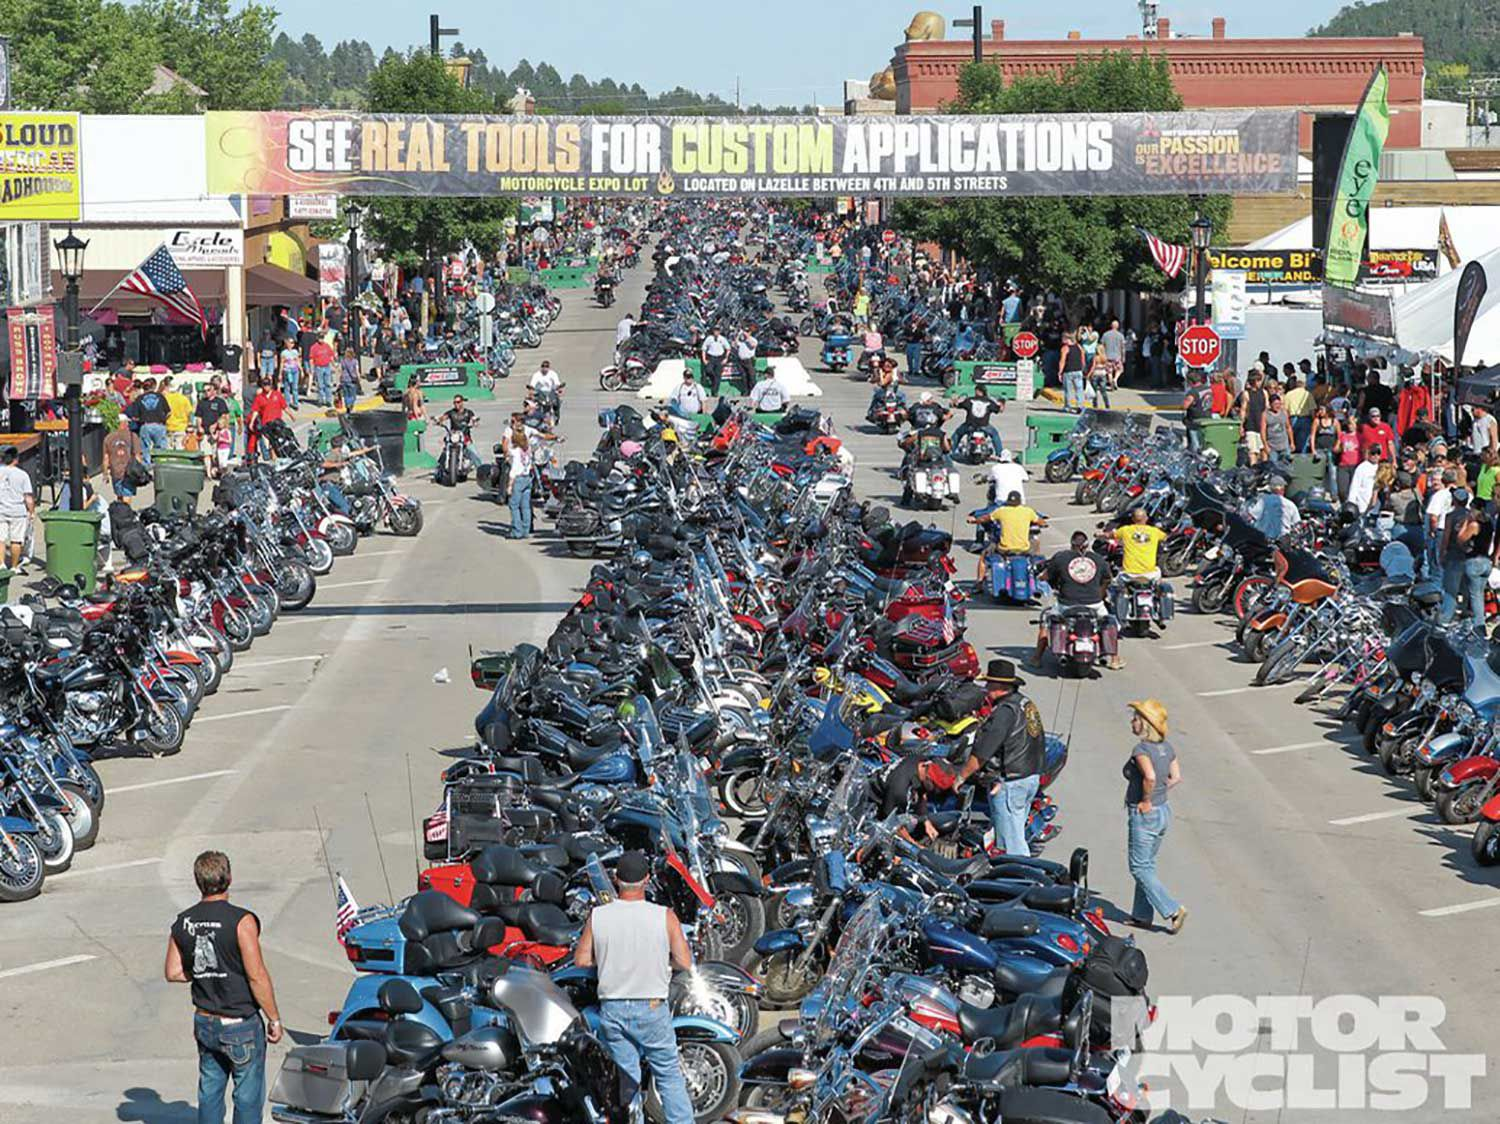 Sturgis organizers expect to surpass 450,000 attendees for the 2019 Sturgis Rally.